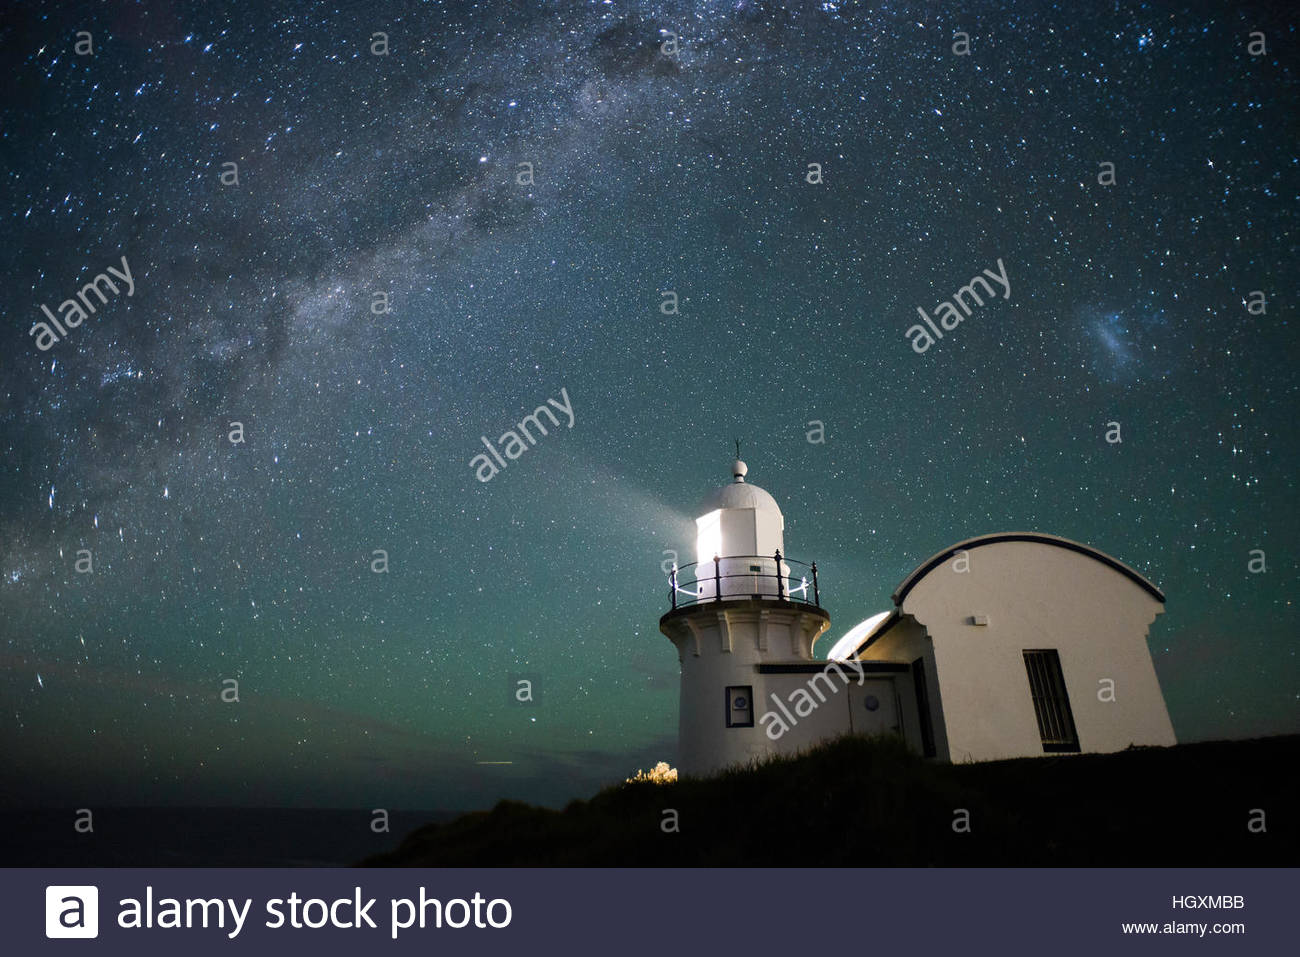 Port Macquarie lighthouse shines in the foreground with the Milky Way lighting up the night sky behind. - Stock Image